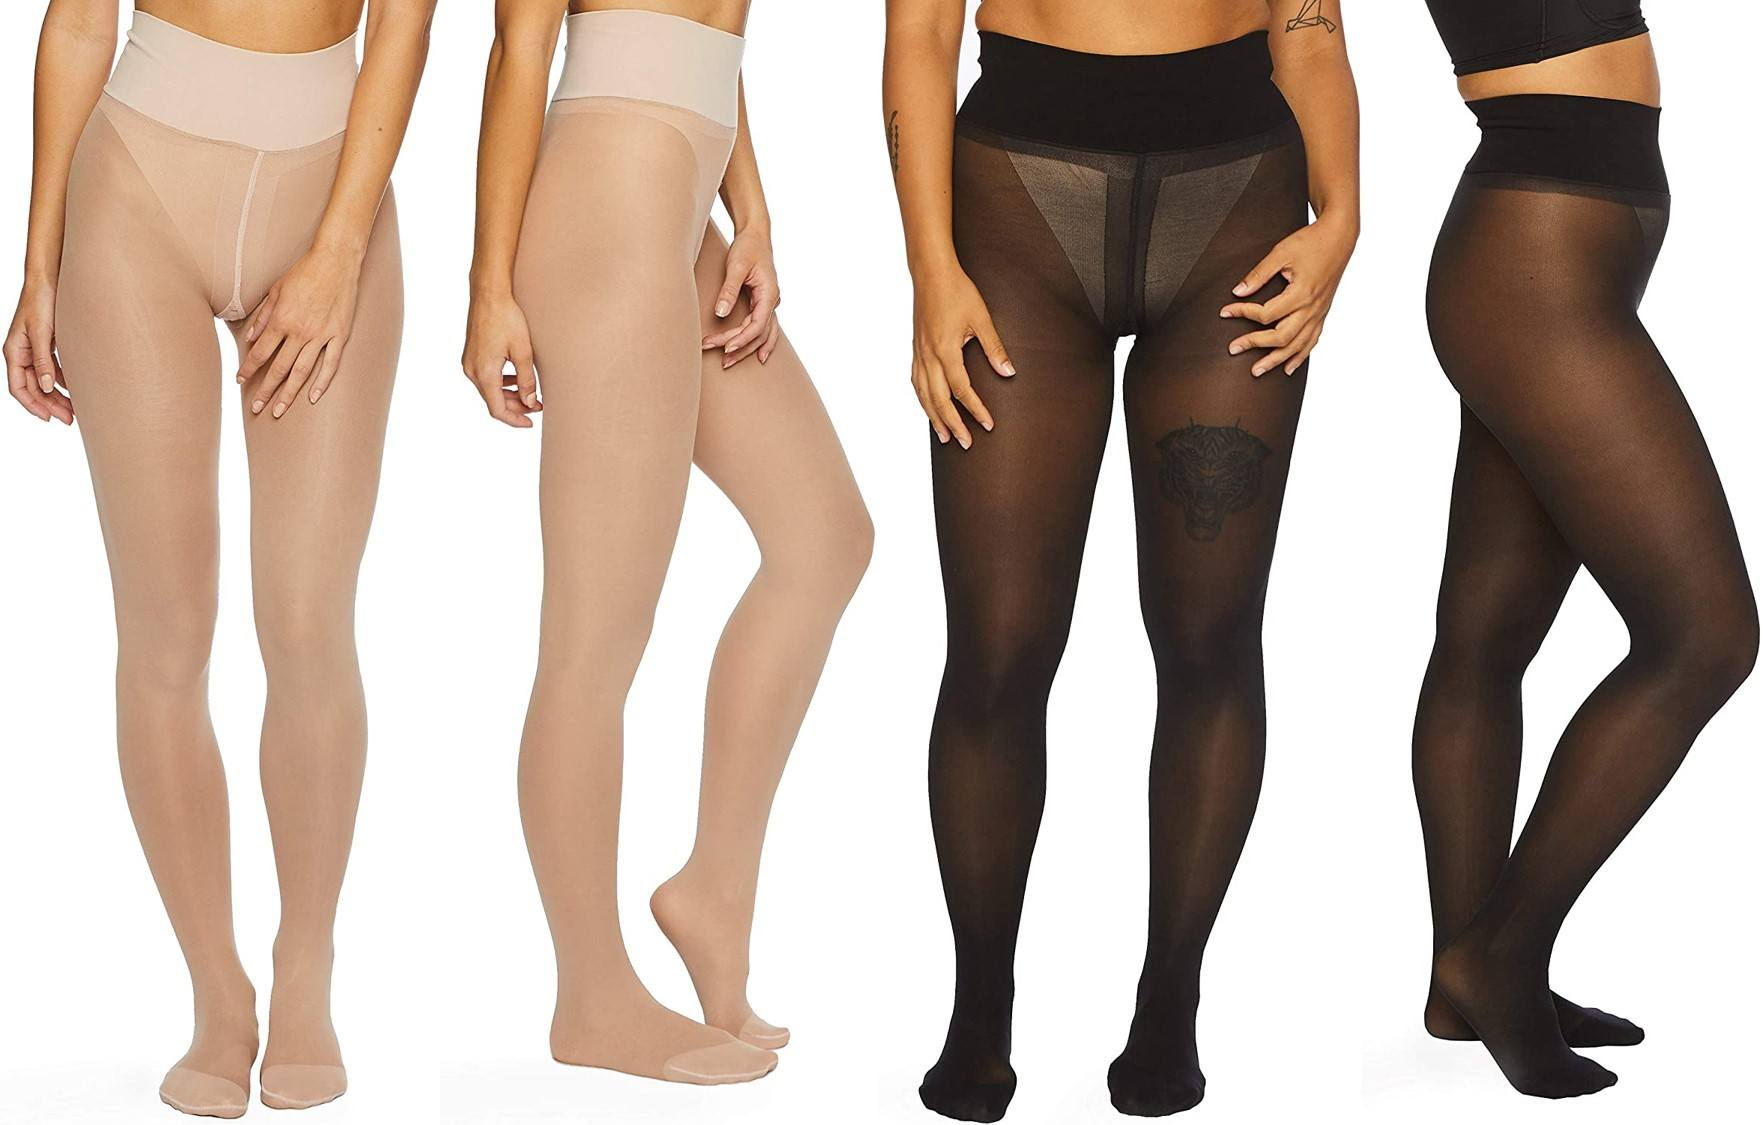 Unbreakable pantyhose for men & women